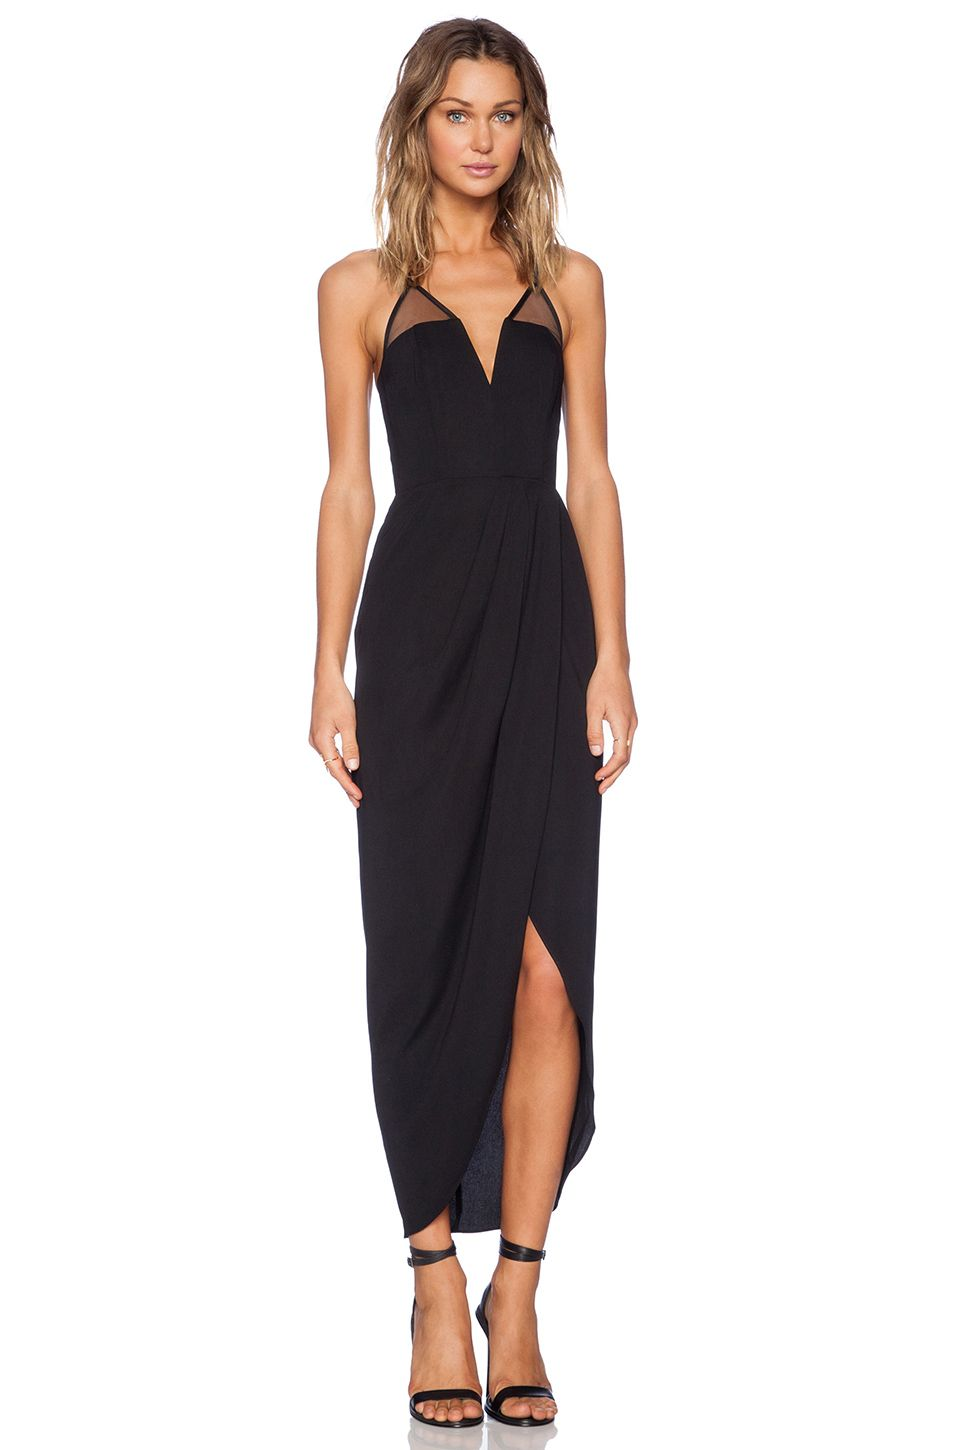 Shona joy brave u brazen bustier maxi dress in black revolve